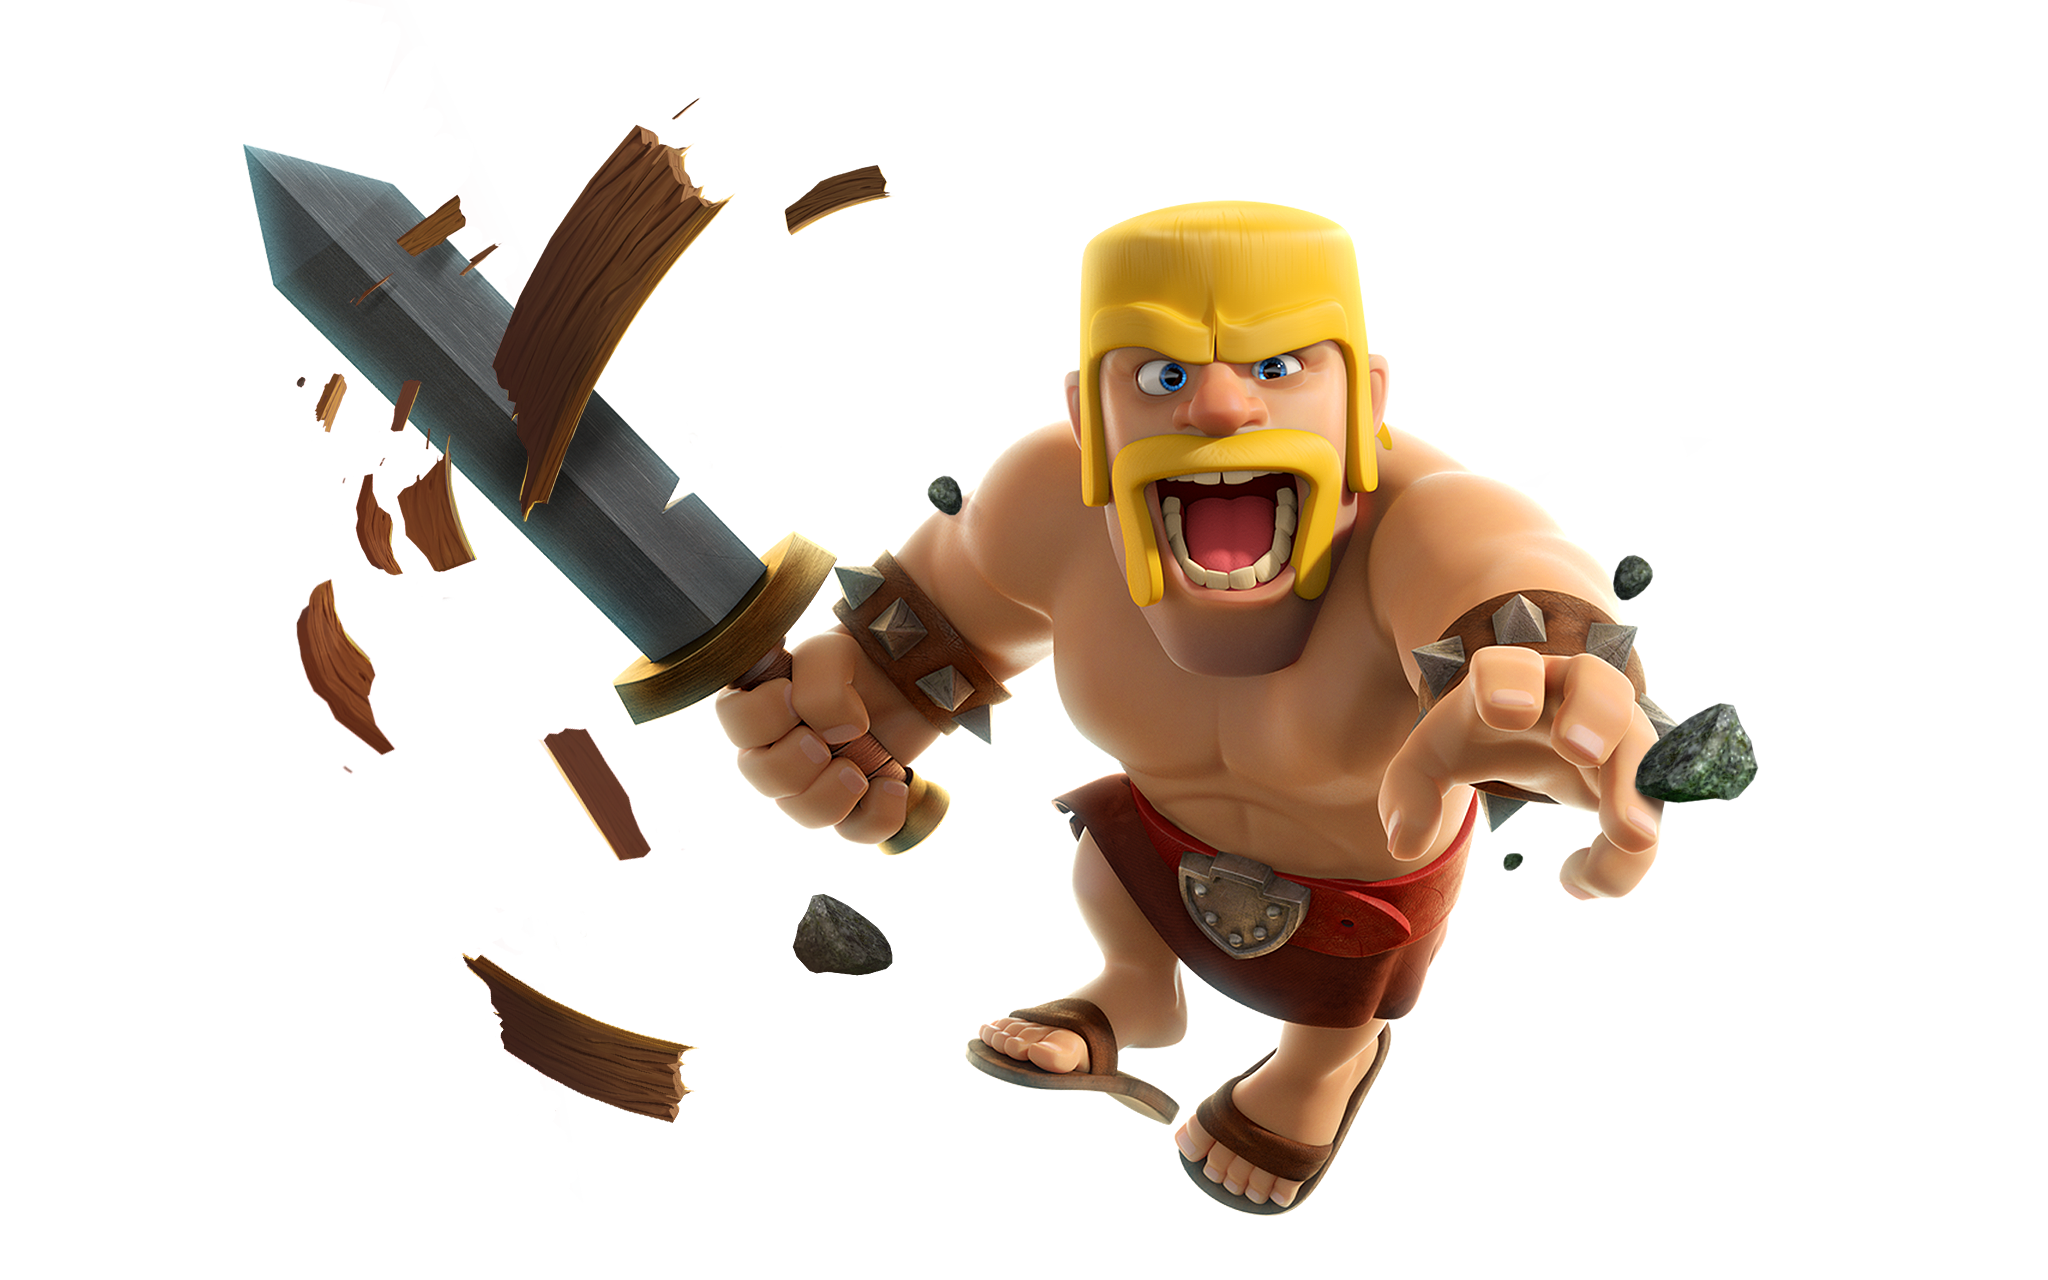 3 star clash of clans png. Update all the troop